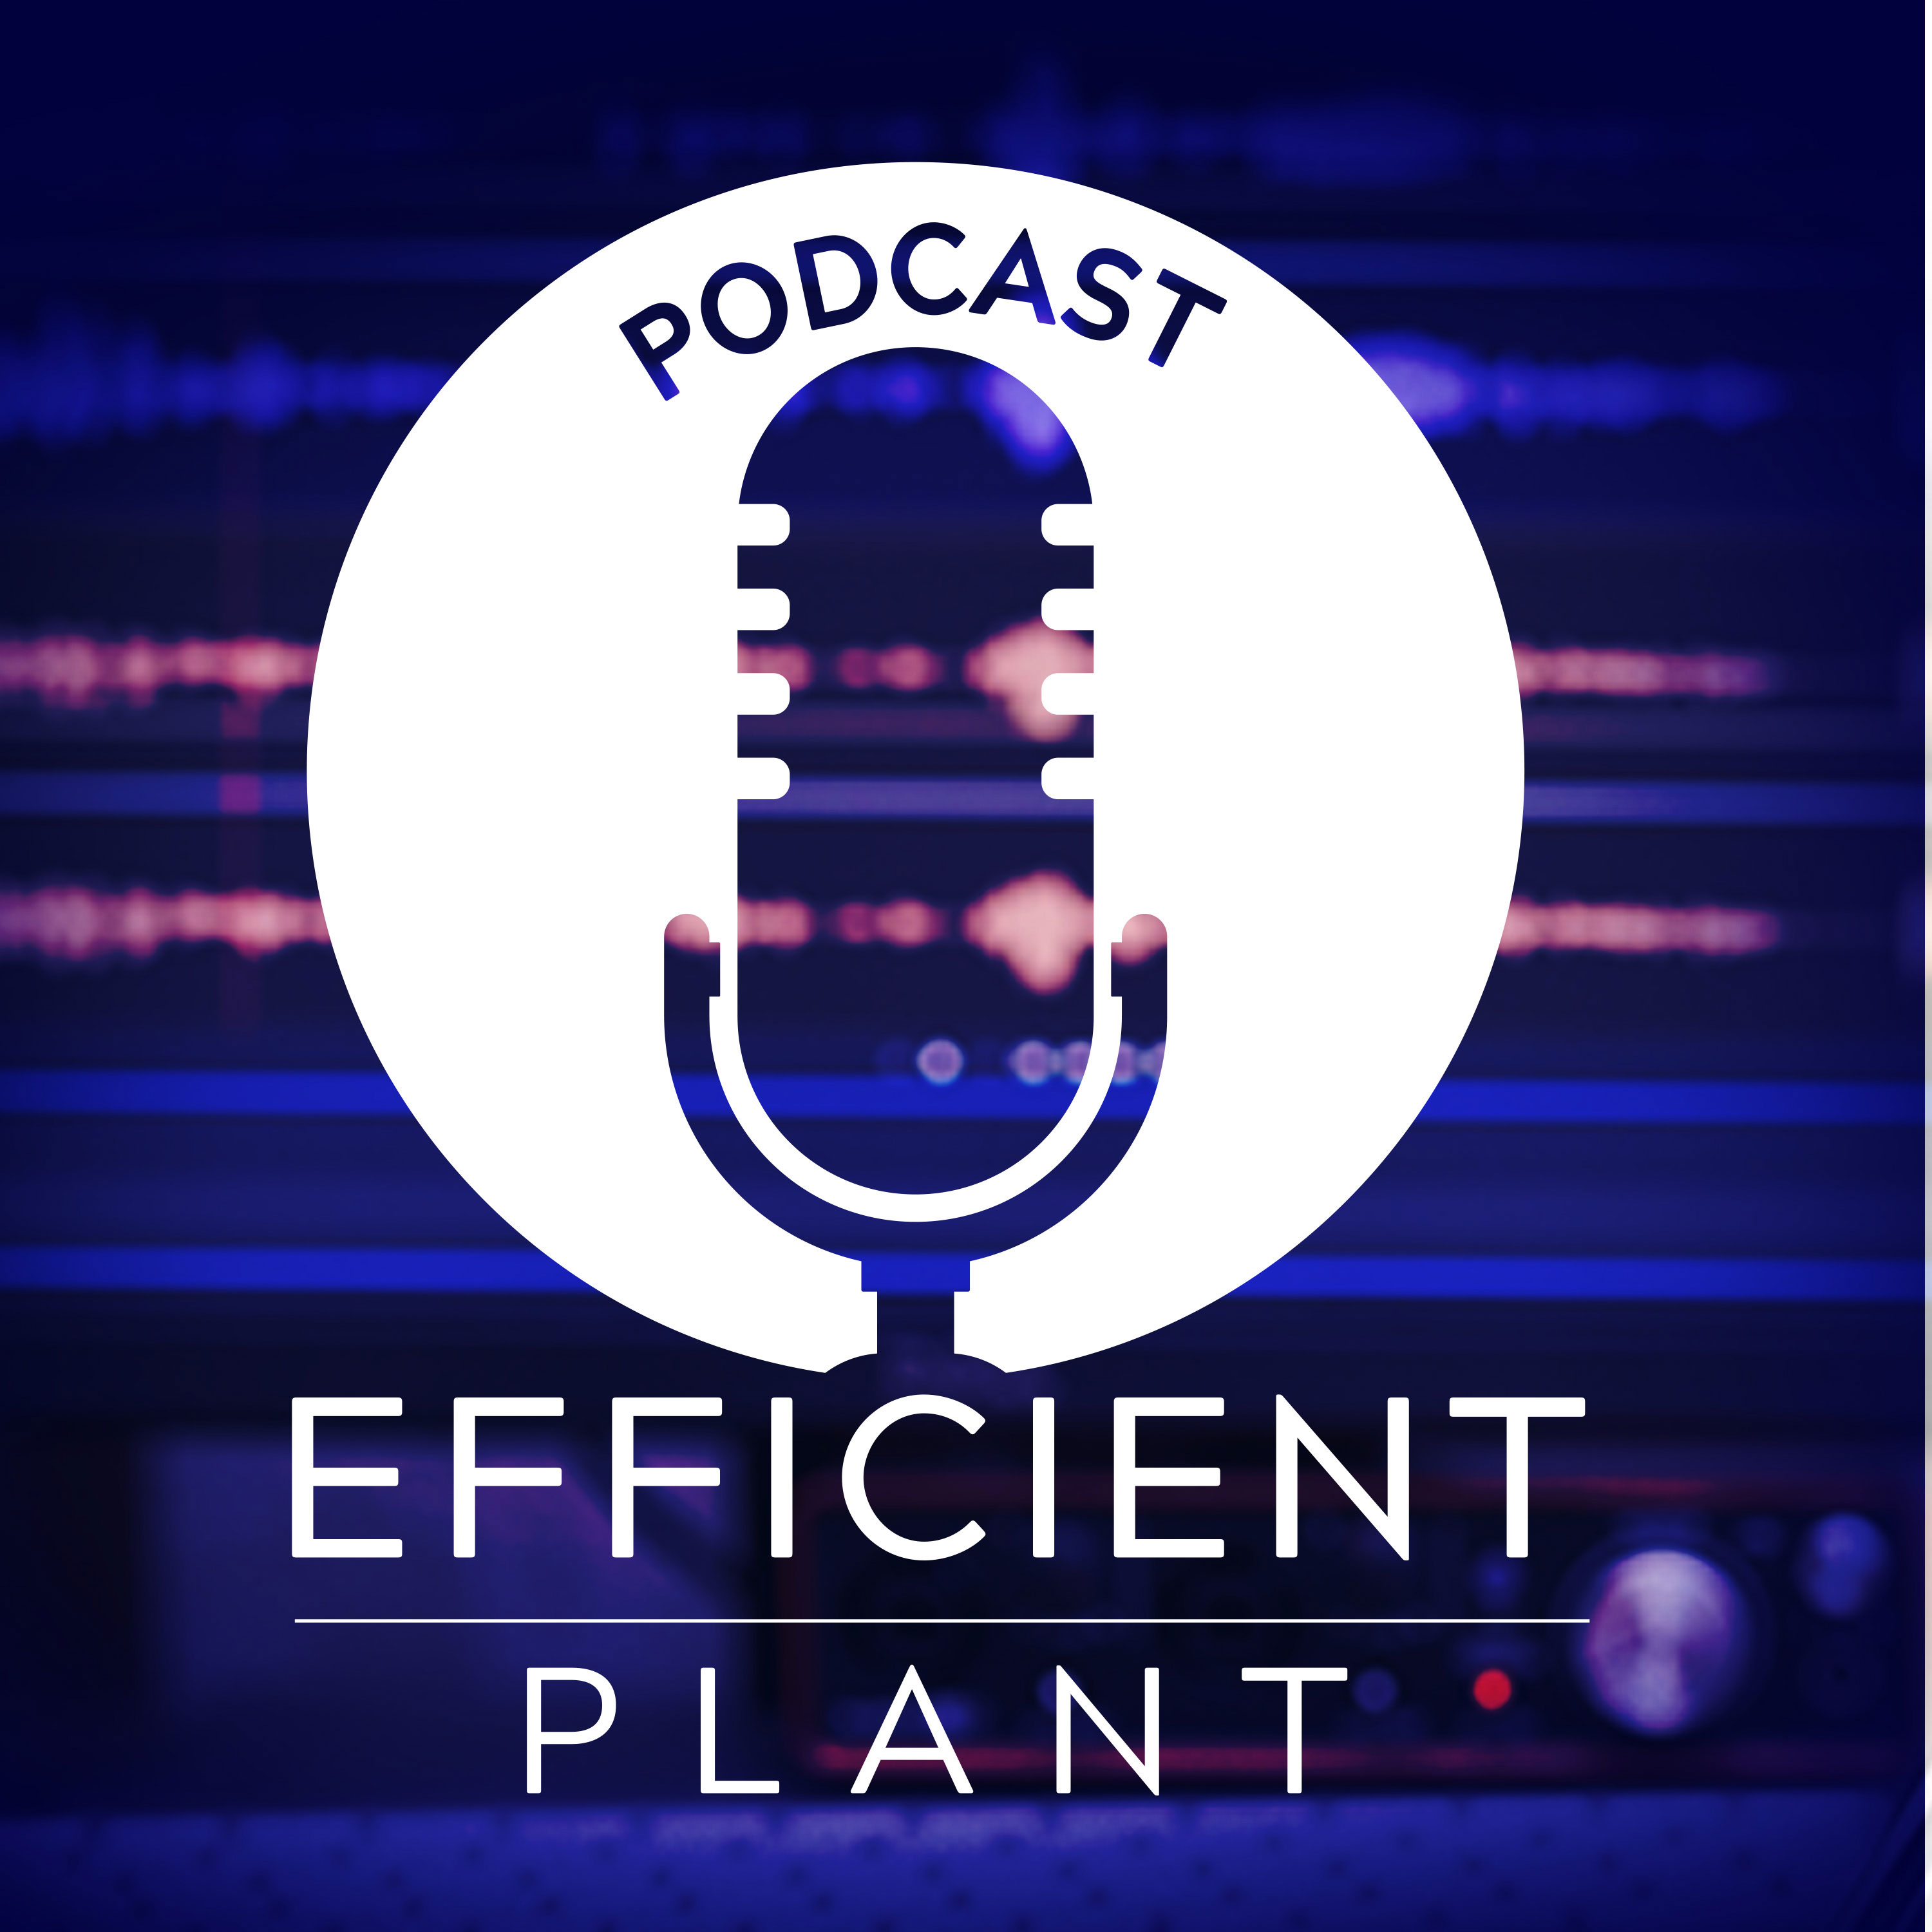 Artwork for podcast The Efficient Plant Podcast